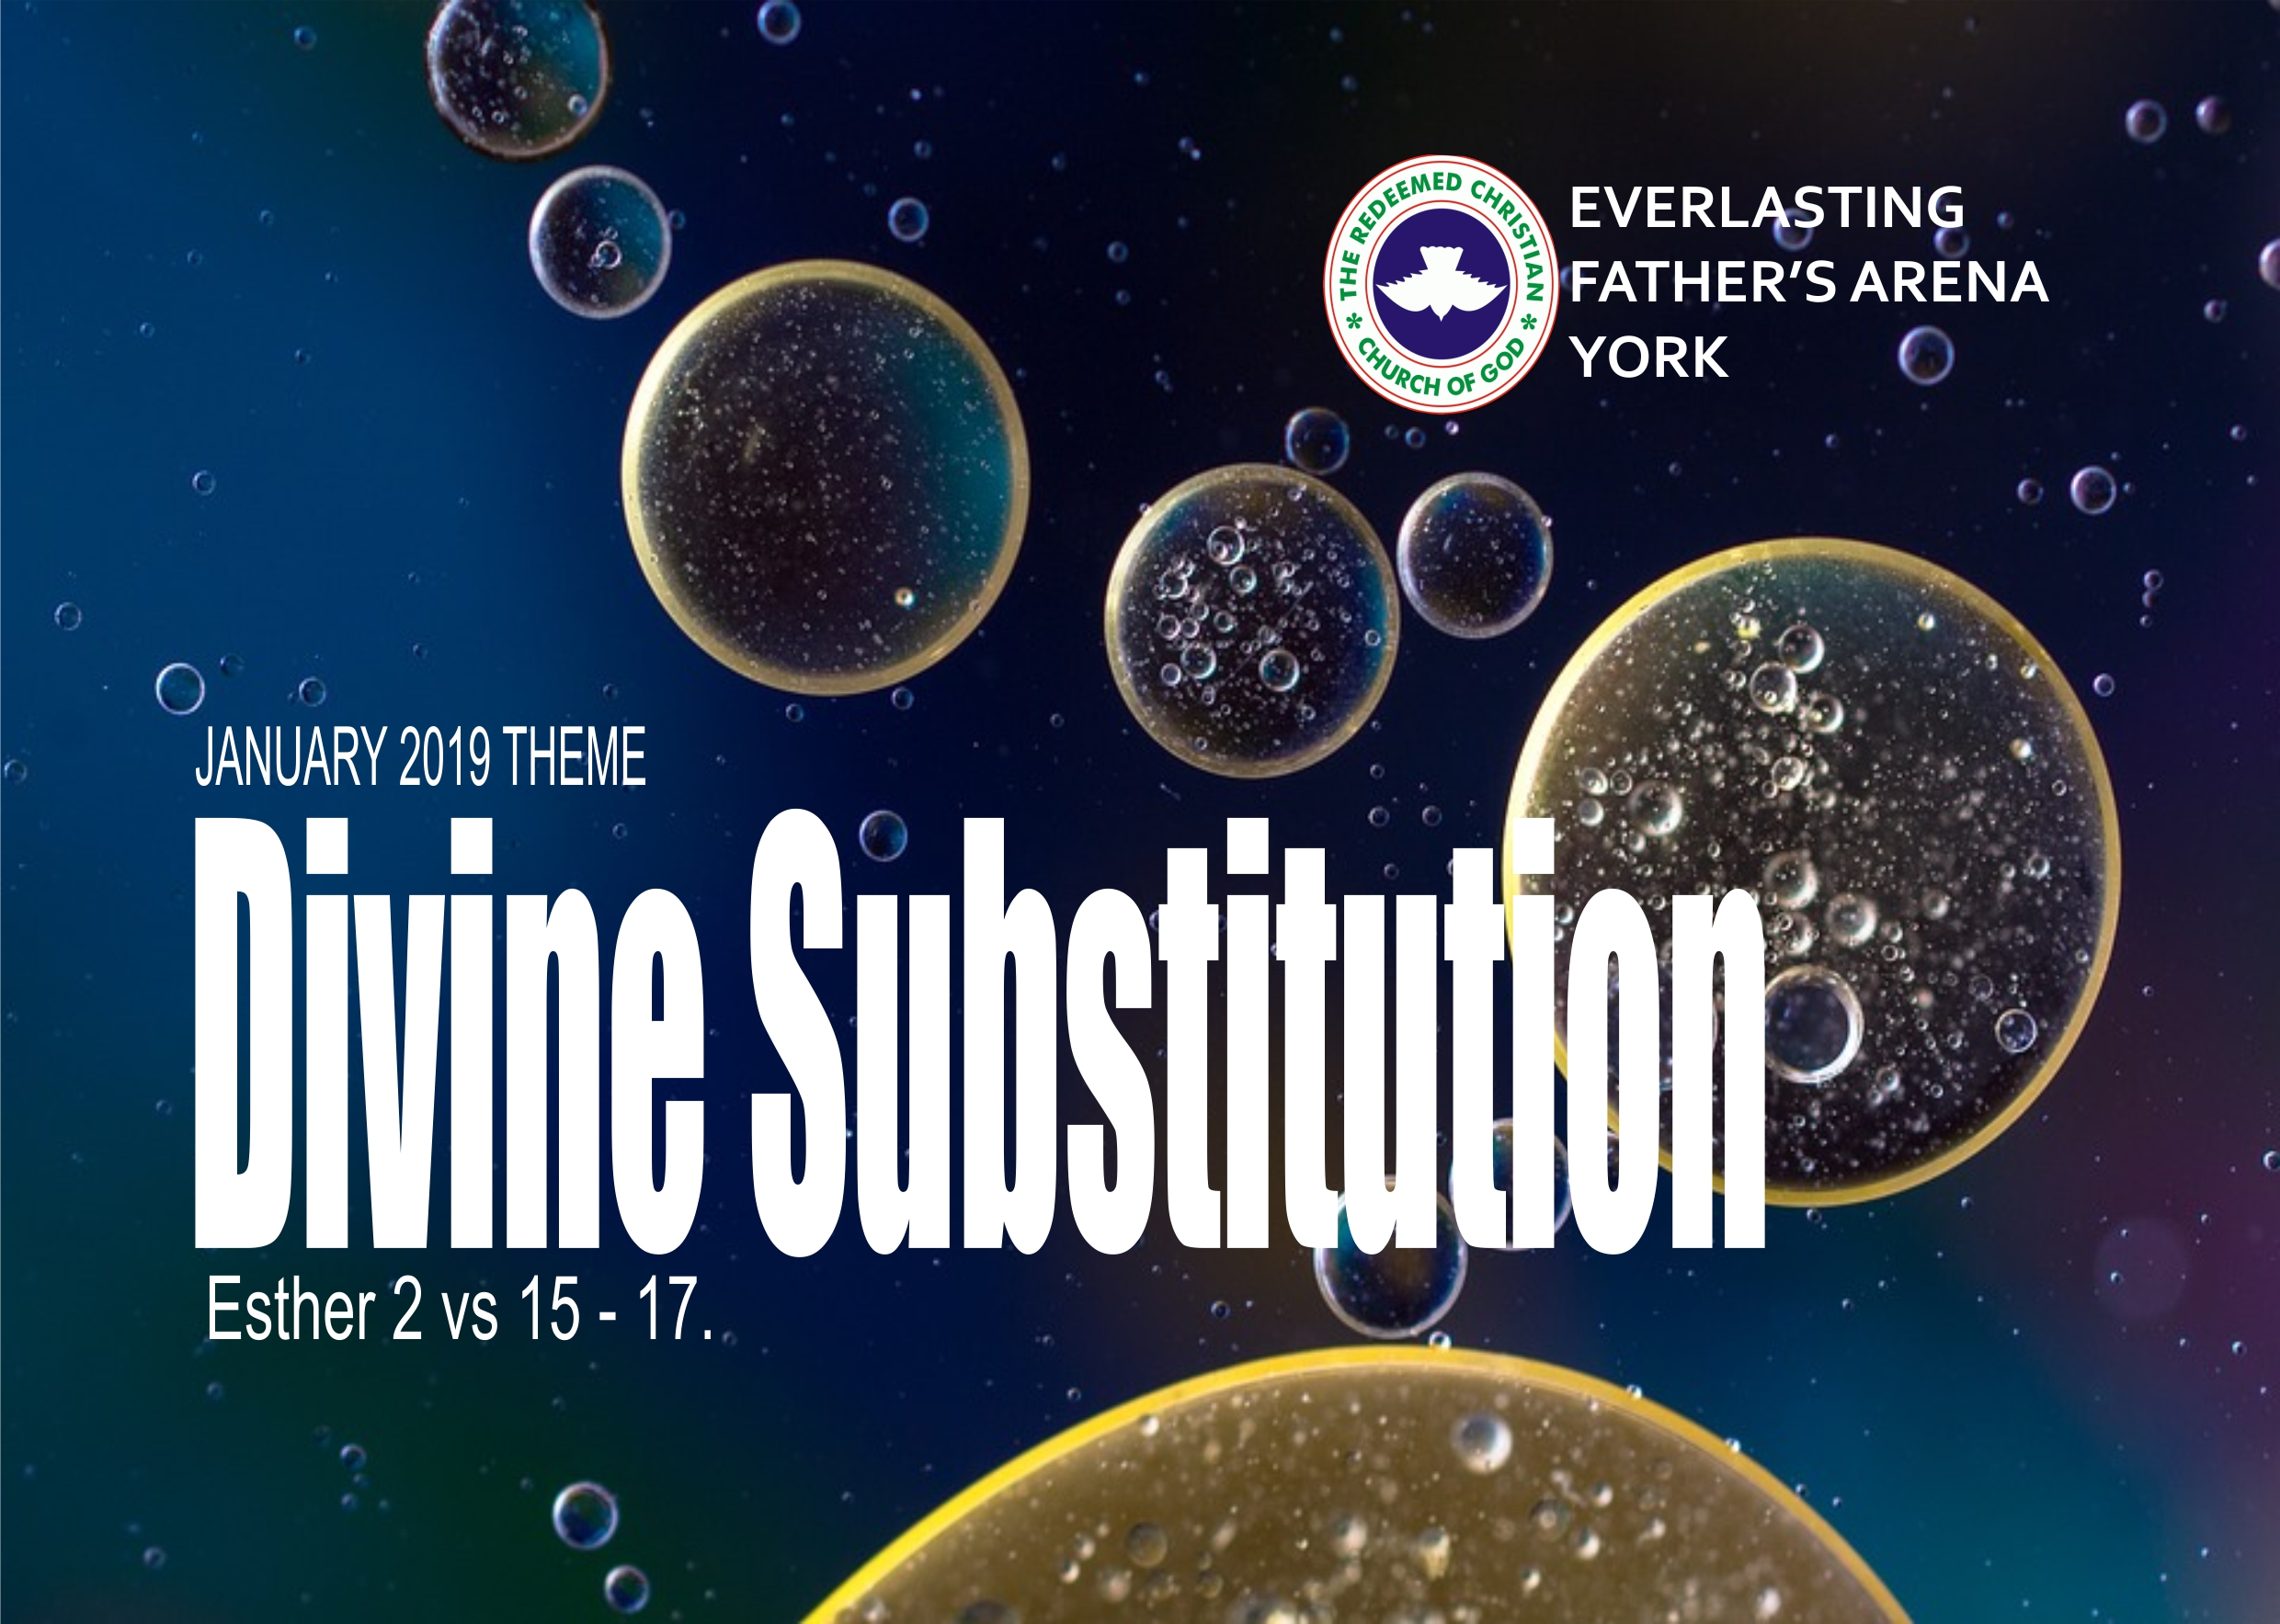 January 2019 Theme - Divine Substitution (Esther 2:15-17)